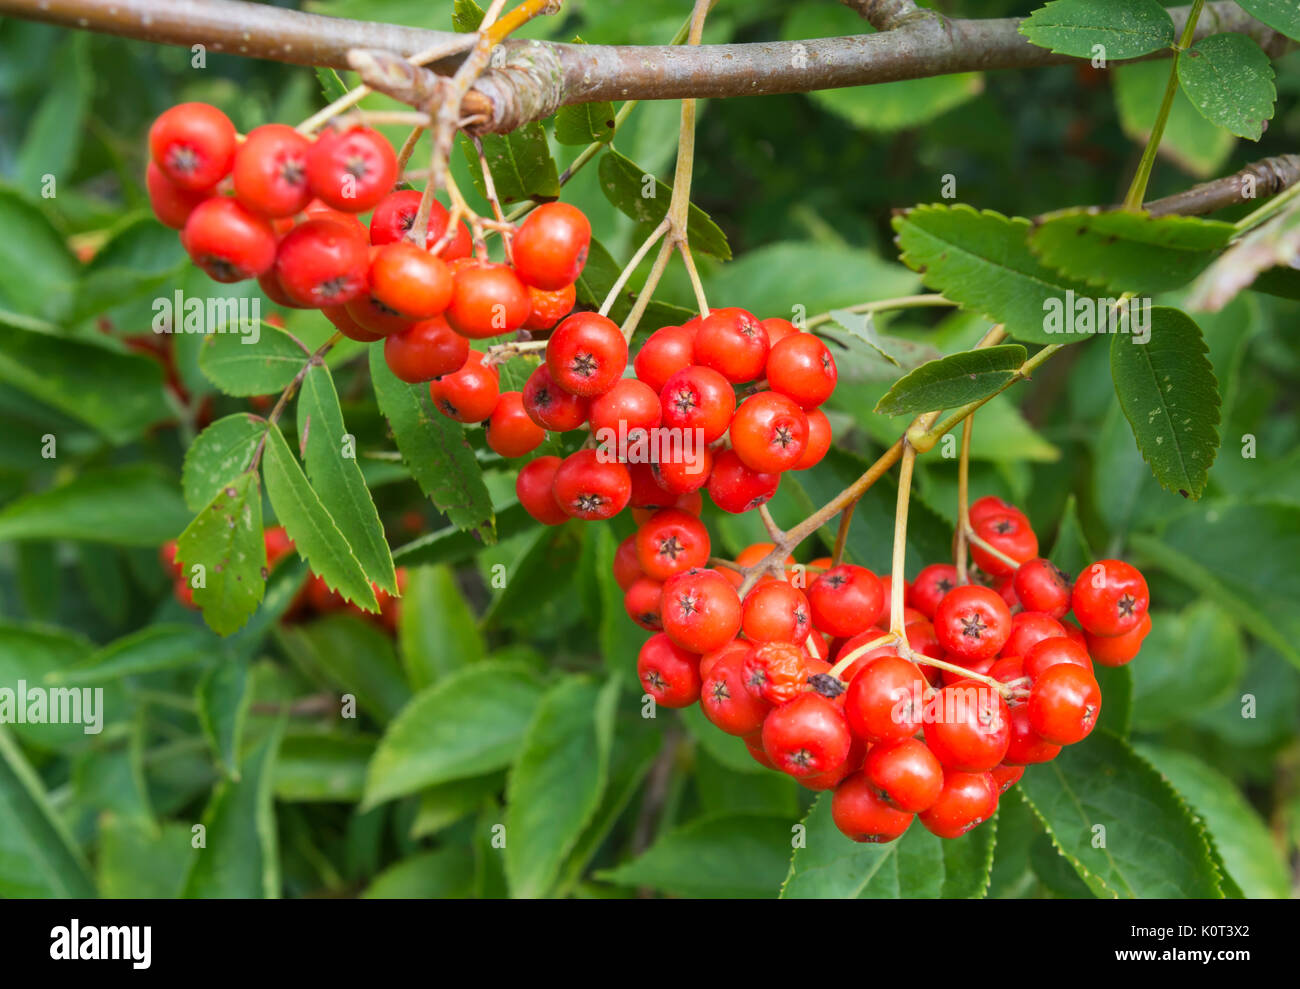 Small red berries from a Mountain Ash tree (Sorbus aucuparia or Rowan Tree) in early Autumn in the UK. Stock Photo